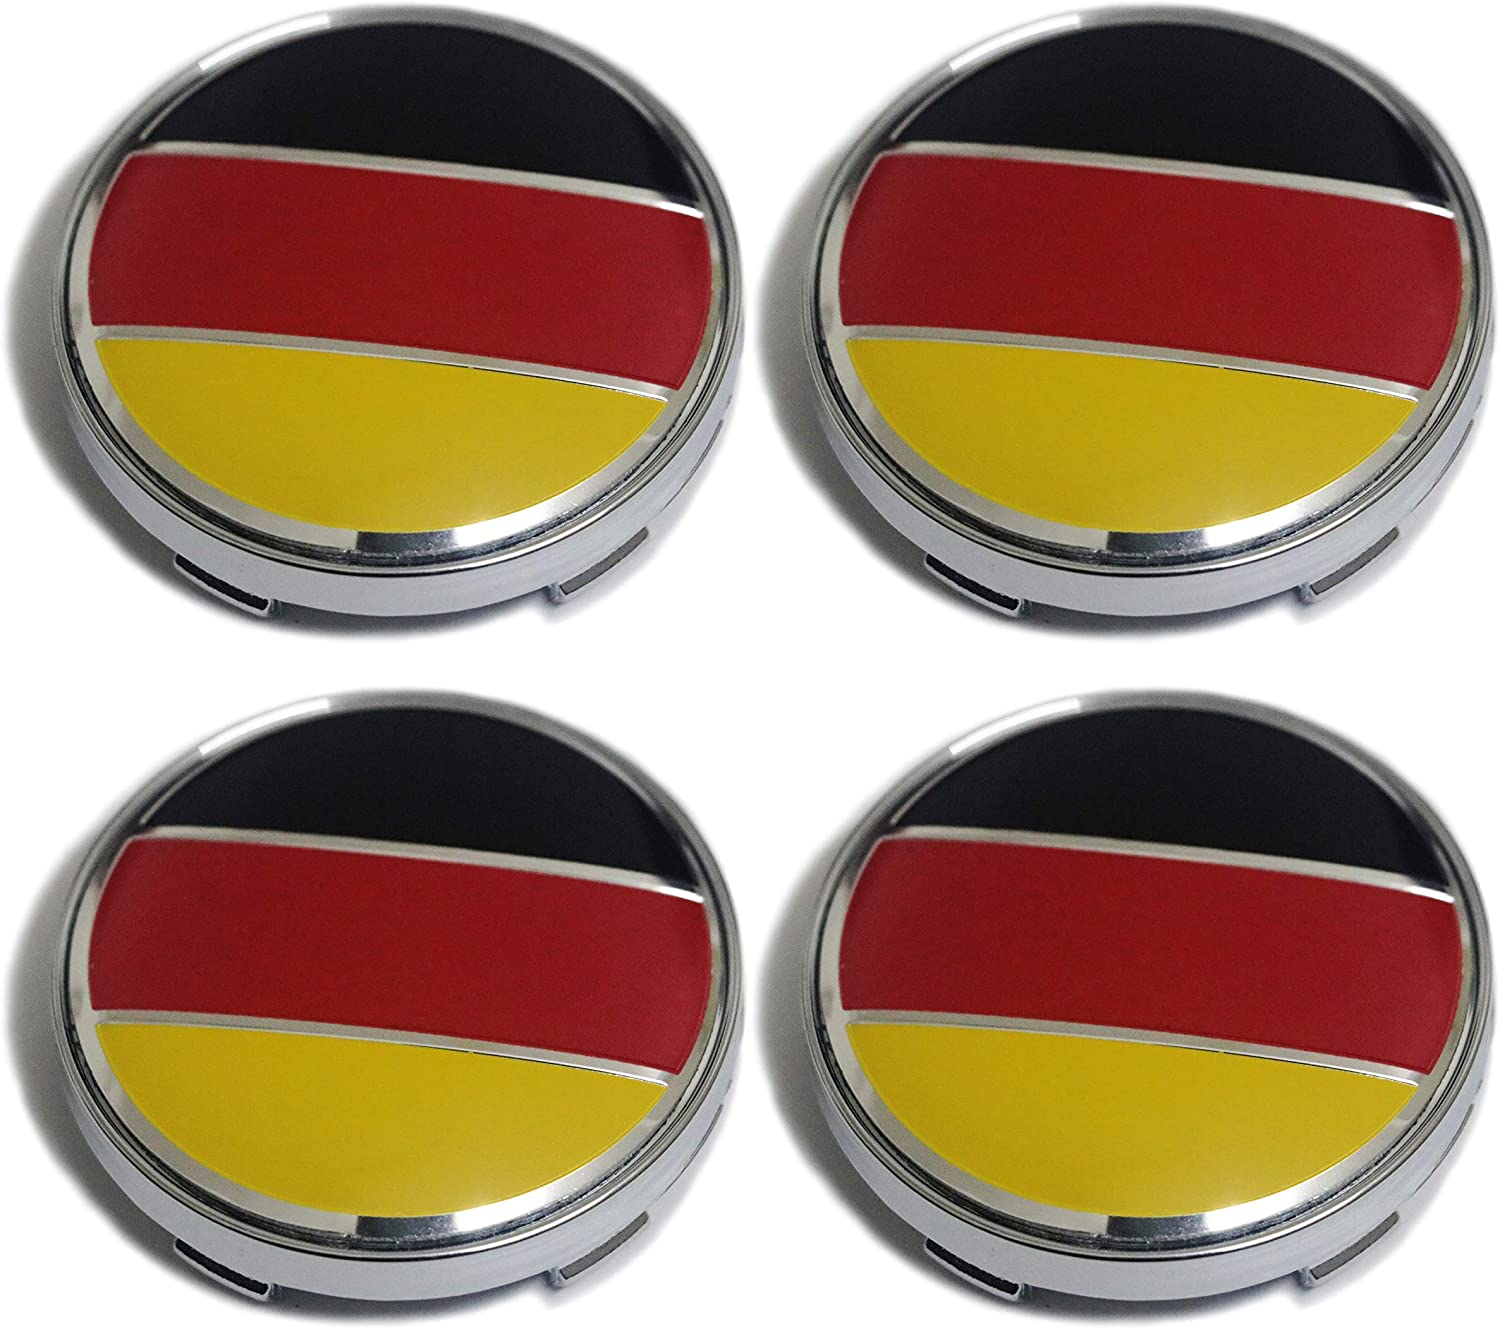 PT-Decors Set of 4pcs 60mm Silver Wheel Center Hub Caps Rim with Coloured UK GB United Kingdom Flag Sticker for Vehicle Auto Car Covers